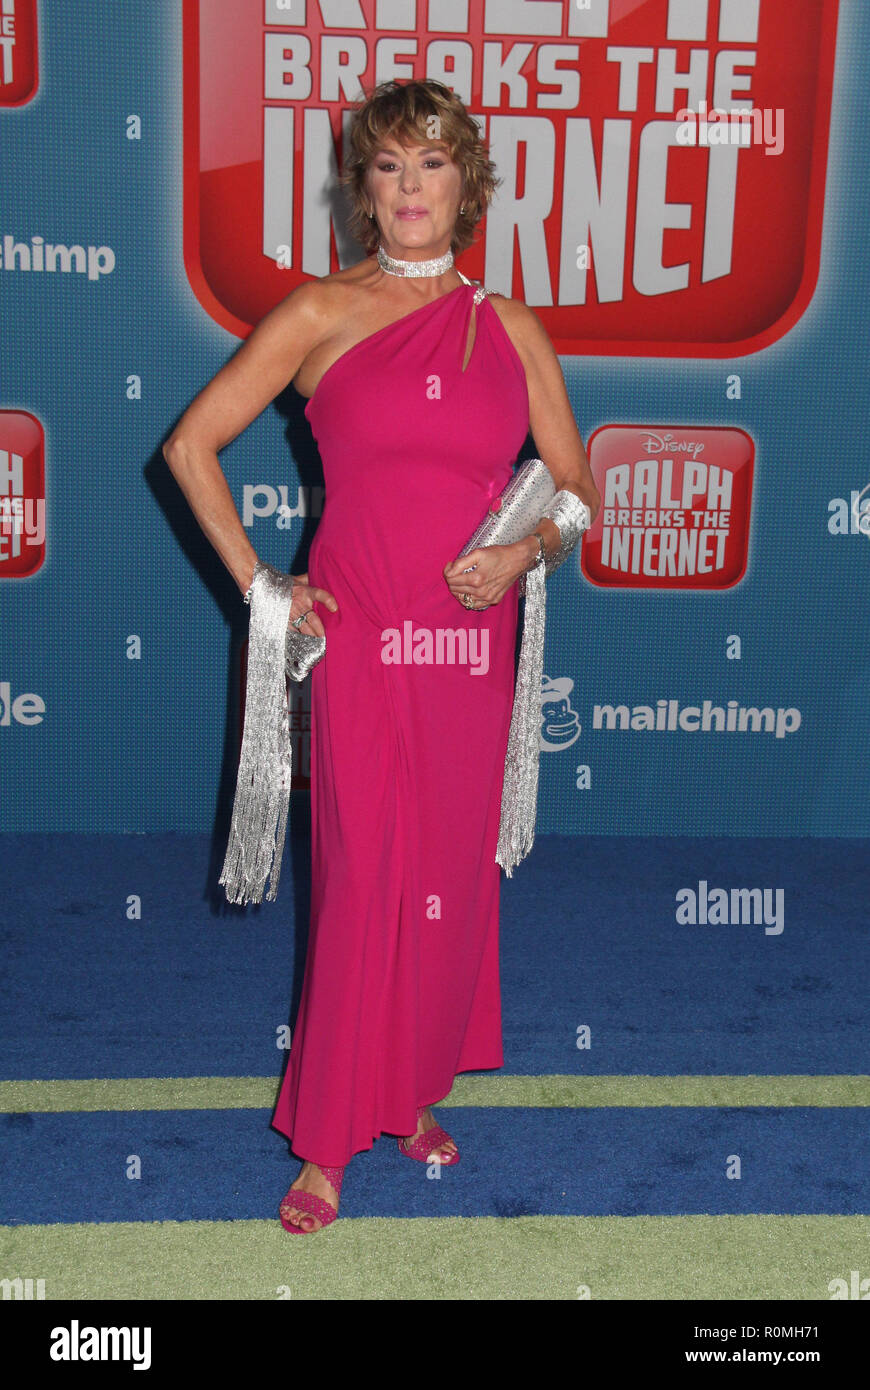 Los Angeles, USA. 5th Nov 2018. Paige O'hara  11/05/2018 The World Premiere of 'Ralph Breaks the Internet' held at El Capitan Theatre in Los Angeles, CA Photo by Hiro Katoh / HNW / PictureLux Credit: PictureLux / The Hollywood Archive/Alamy Live News - Stock Image